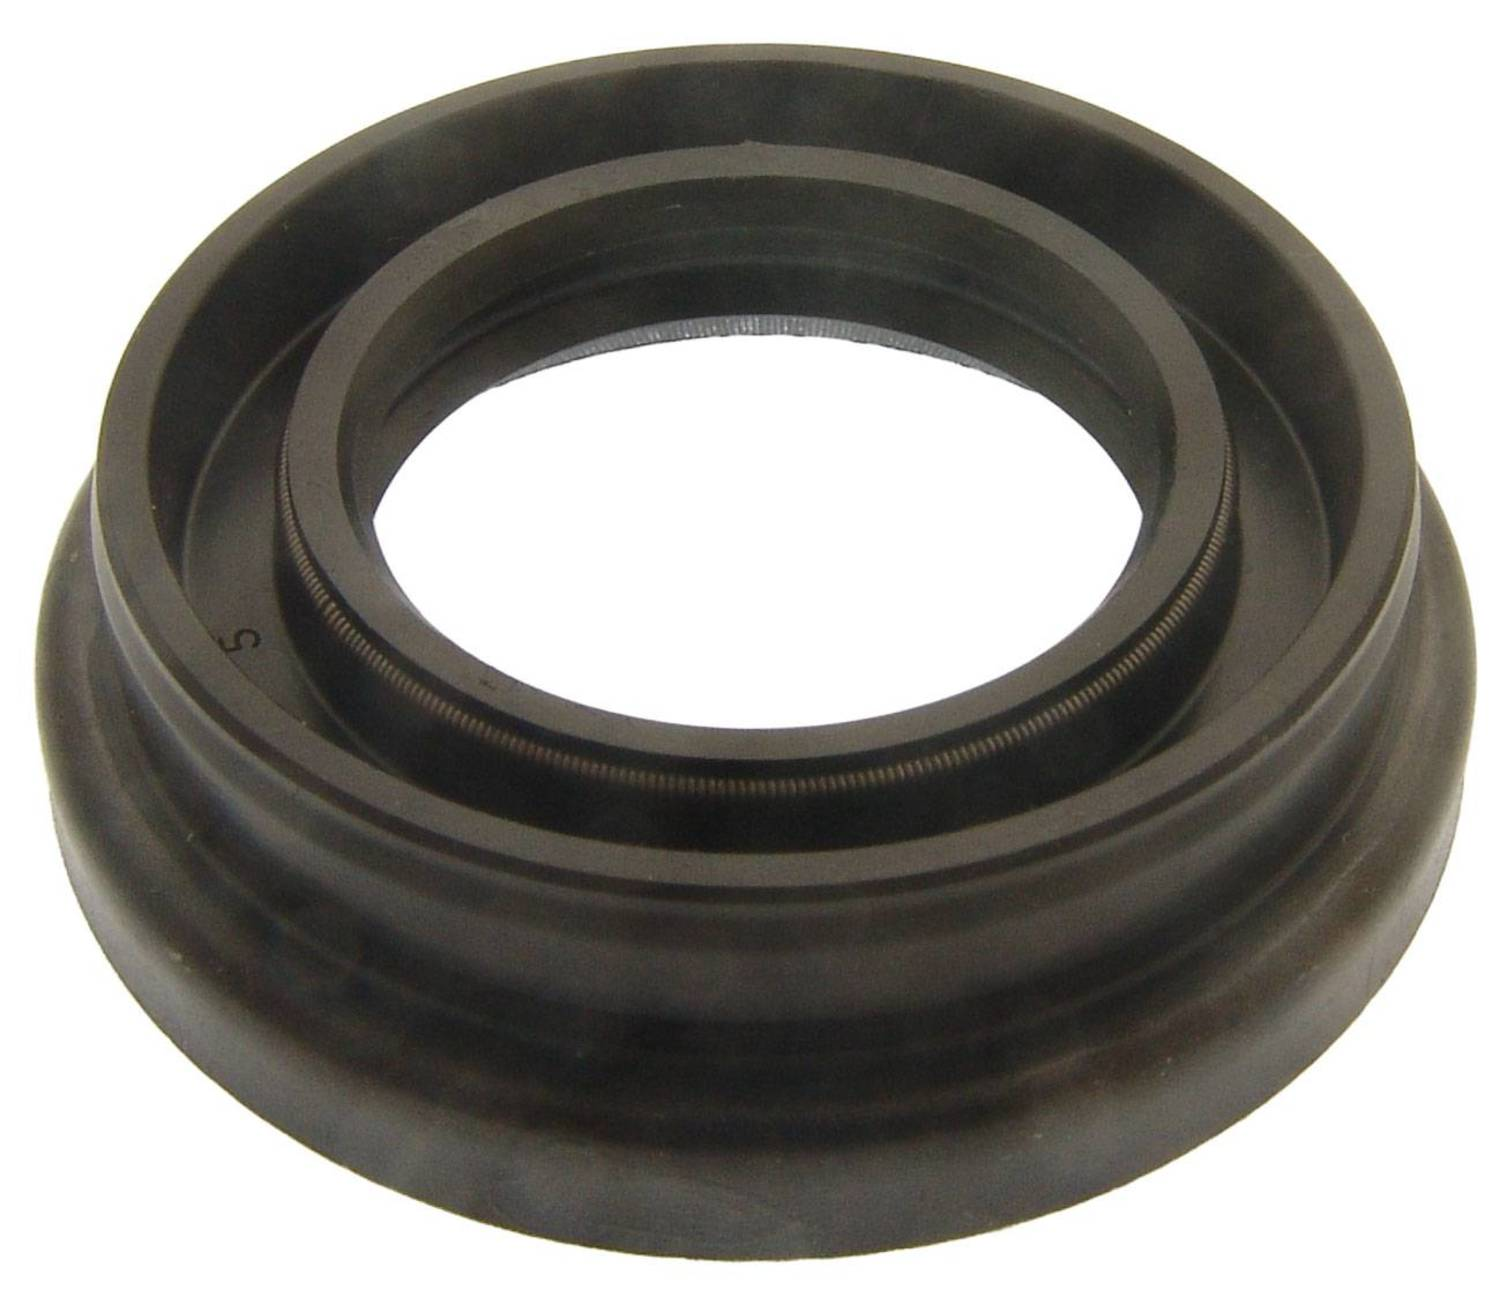 Febest 2010 Mazda CX-7 - Axle Shaft Seal FEBEST # 95HBS-35560916X OEM # M0A7-27-238A at Sears.com